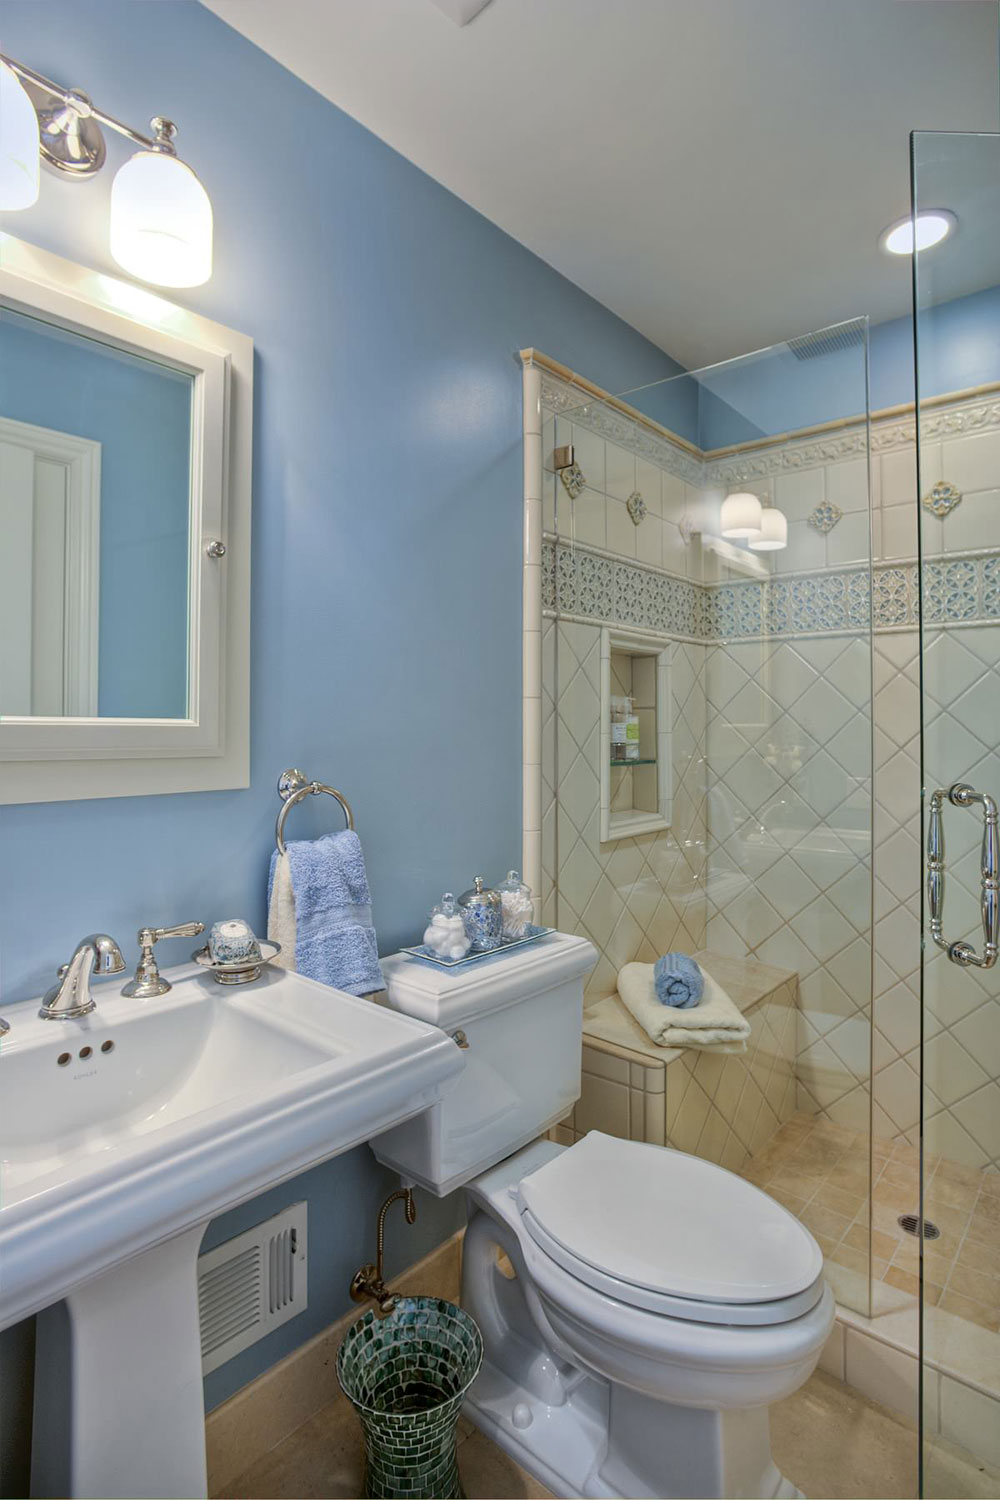 How To Make A Small Bathroom Look Bigger9 How